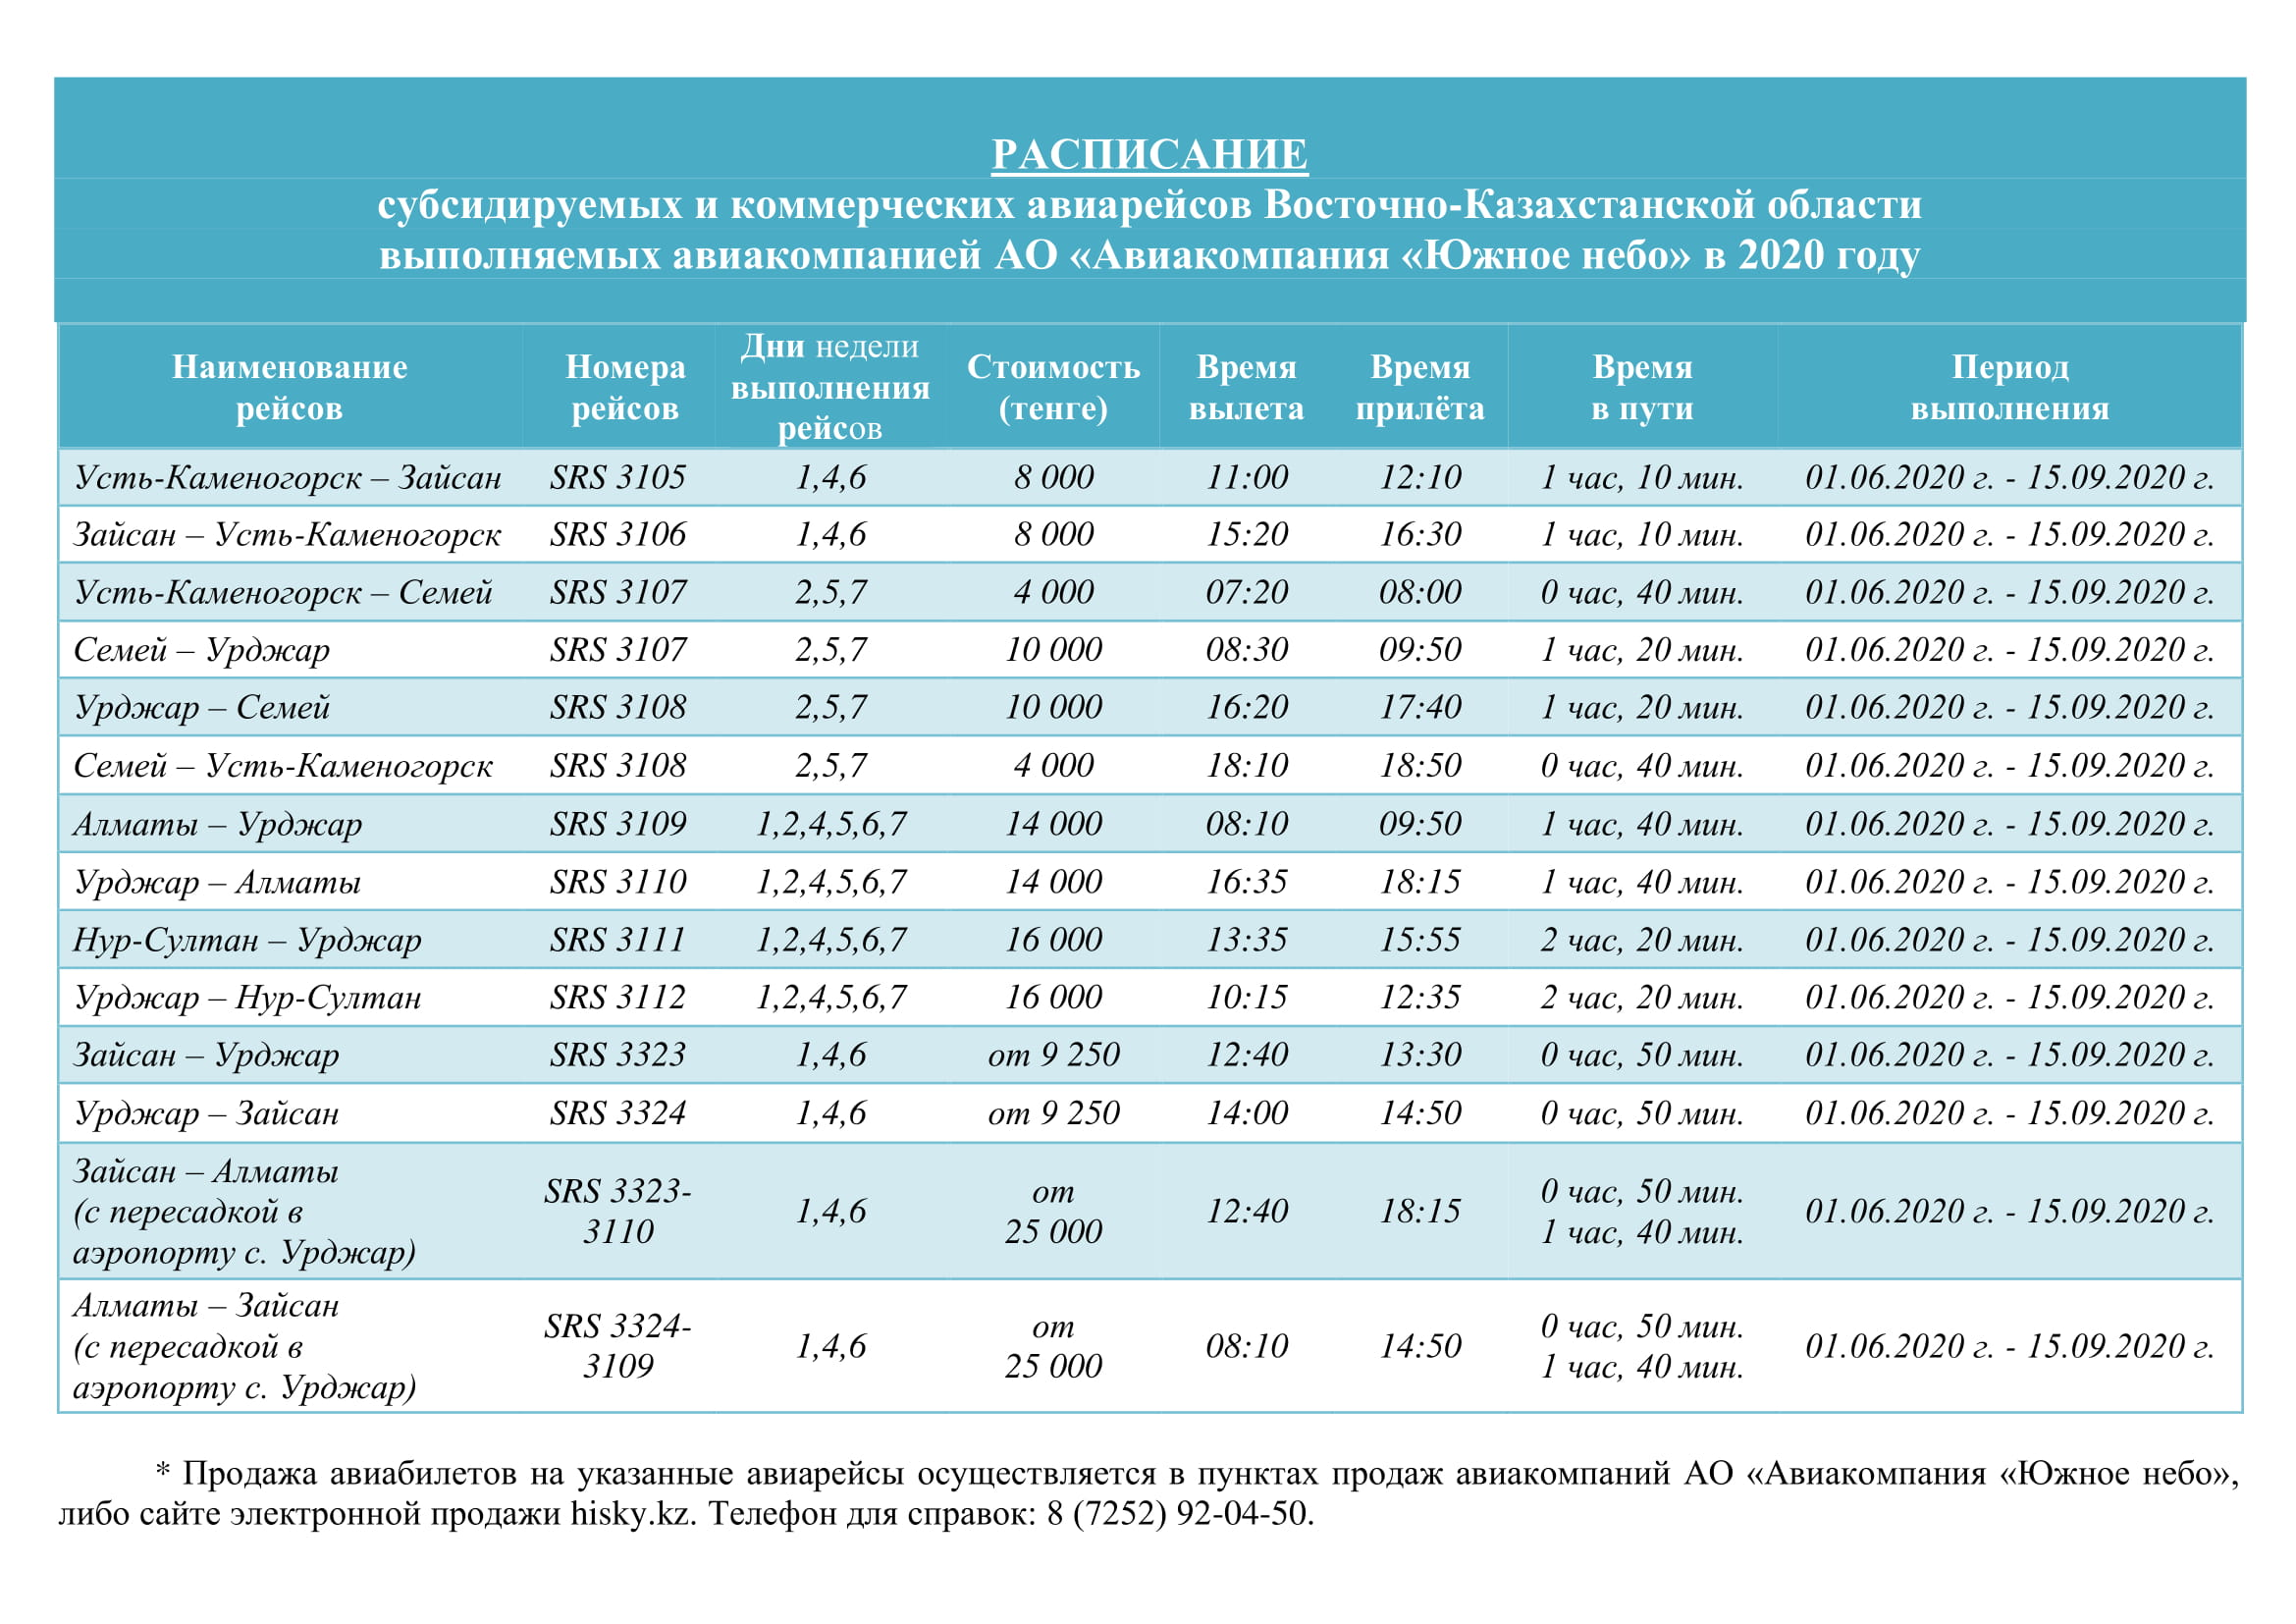 SCHEDULE of subsidized and commercial flights of the East Kazakhstan region